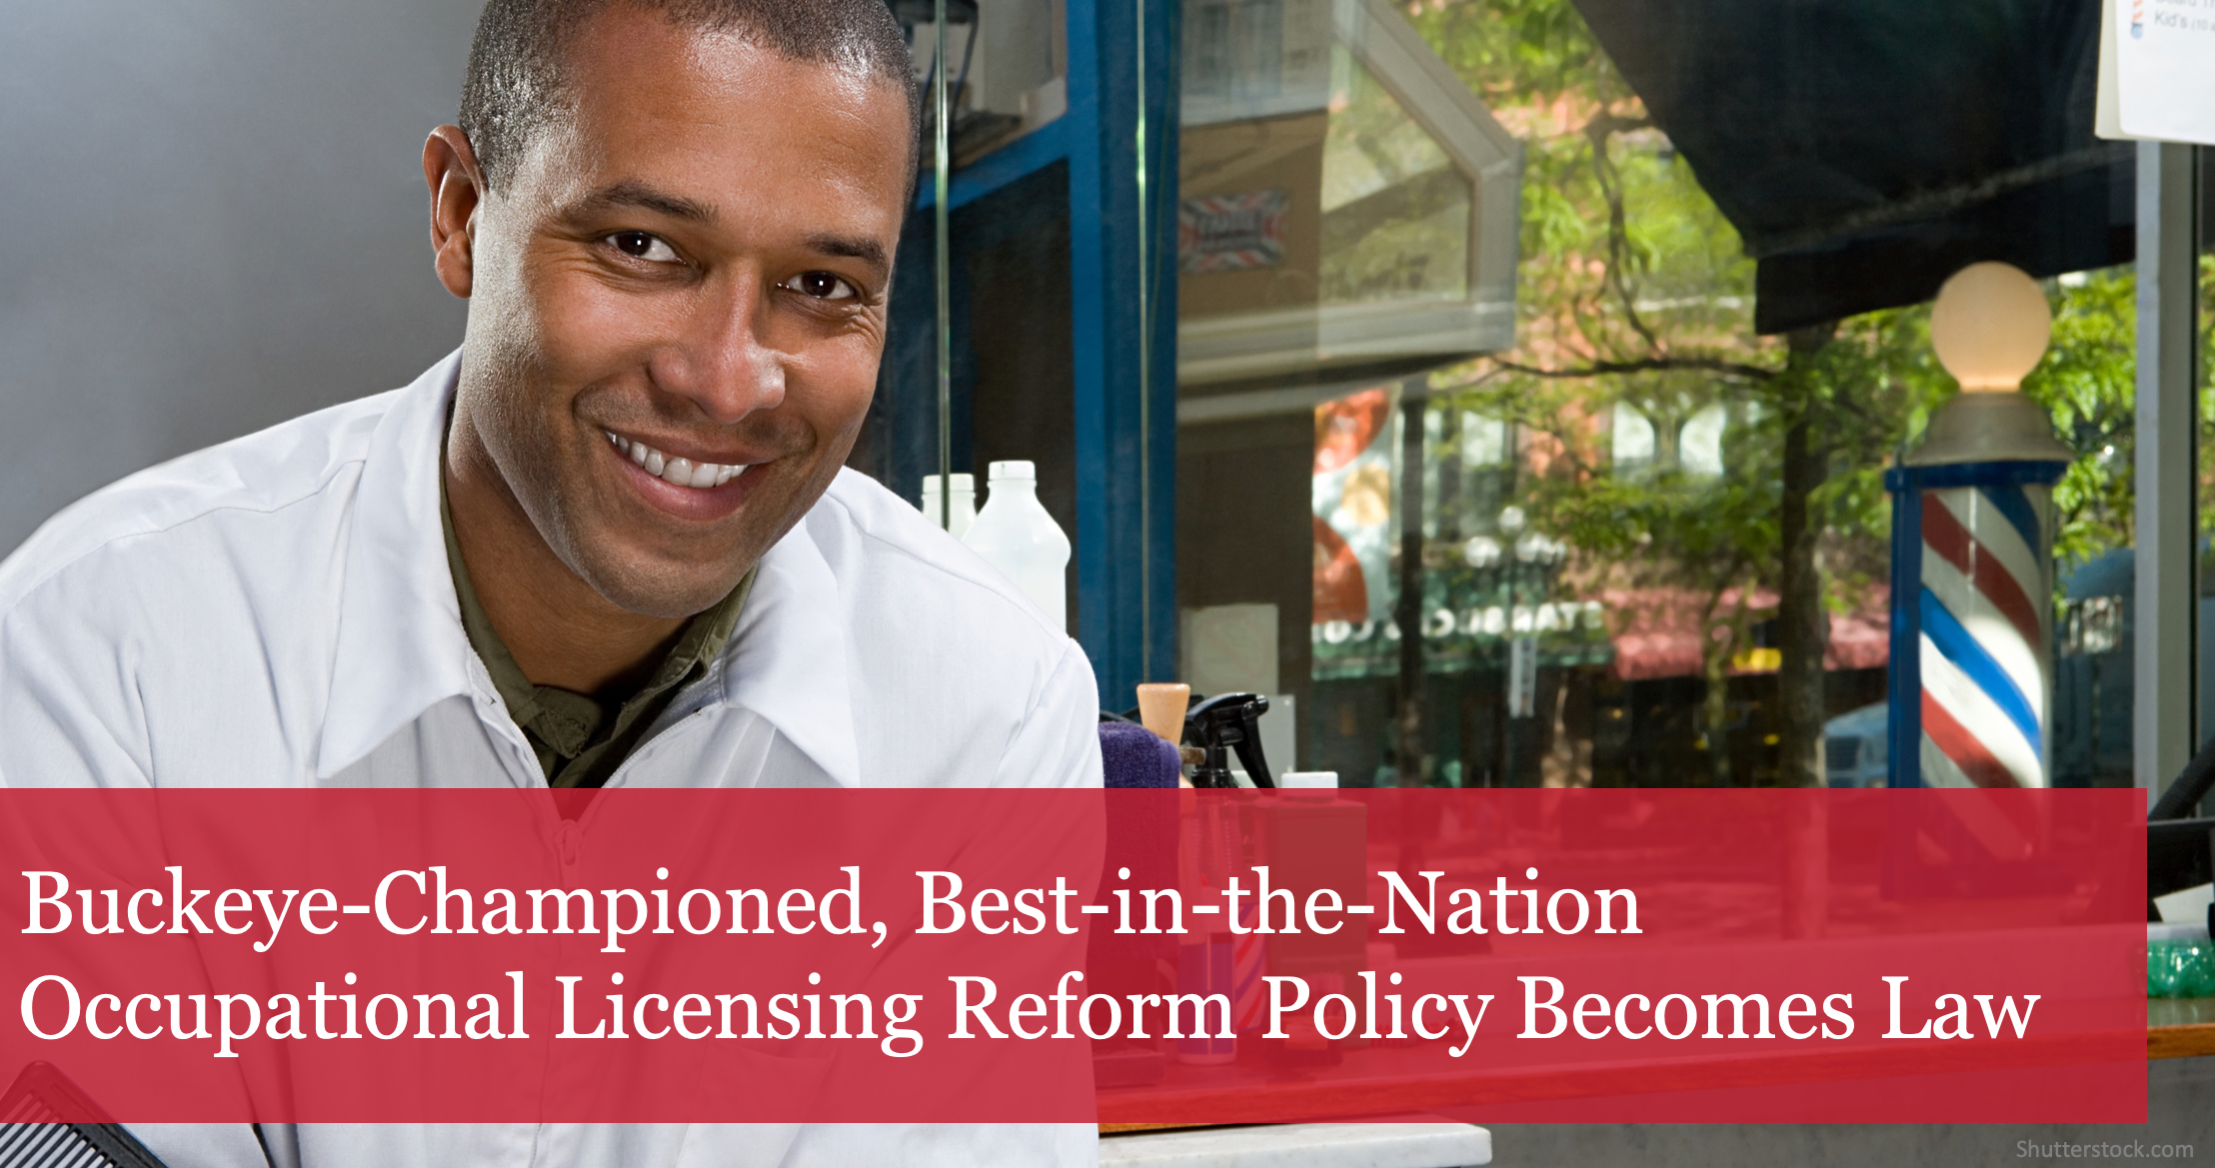 The Buckeye Institute-Championed Best-in-the-Nation Occupational Licensing Reform Policy